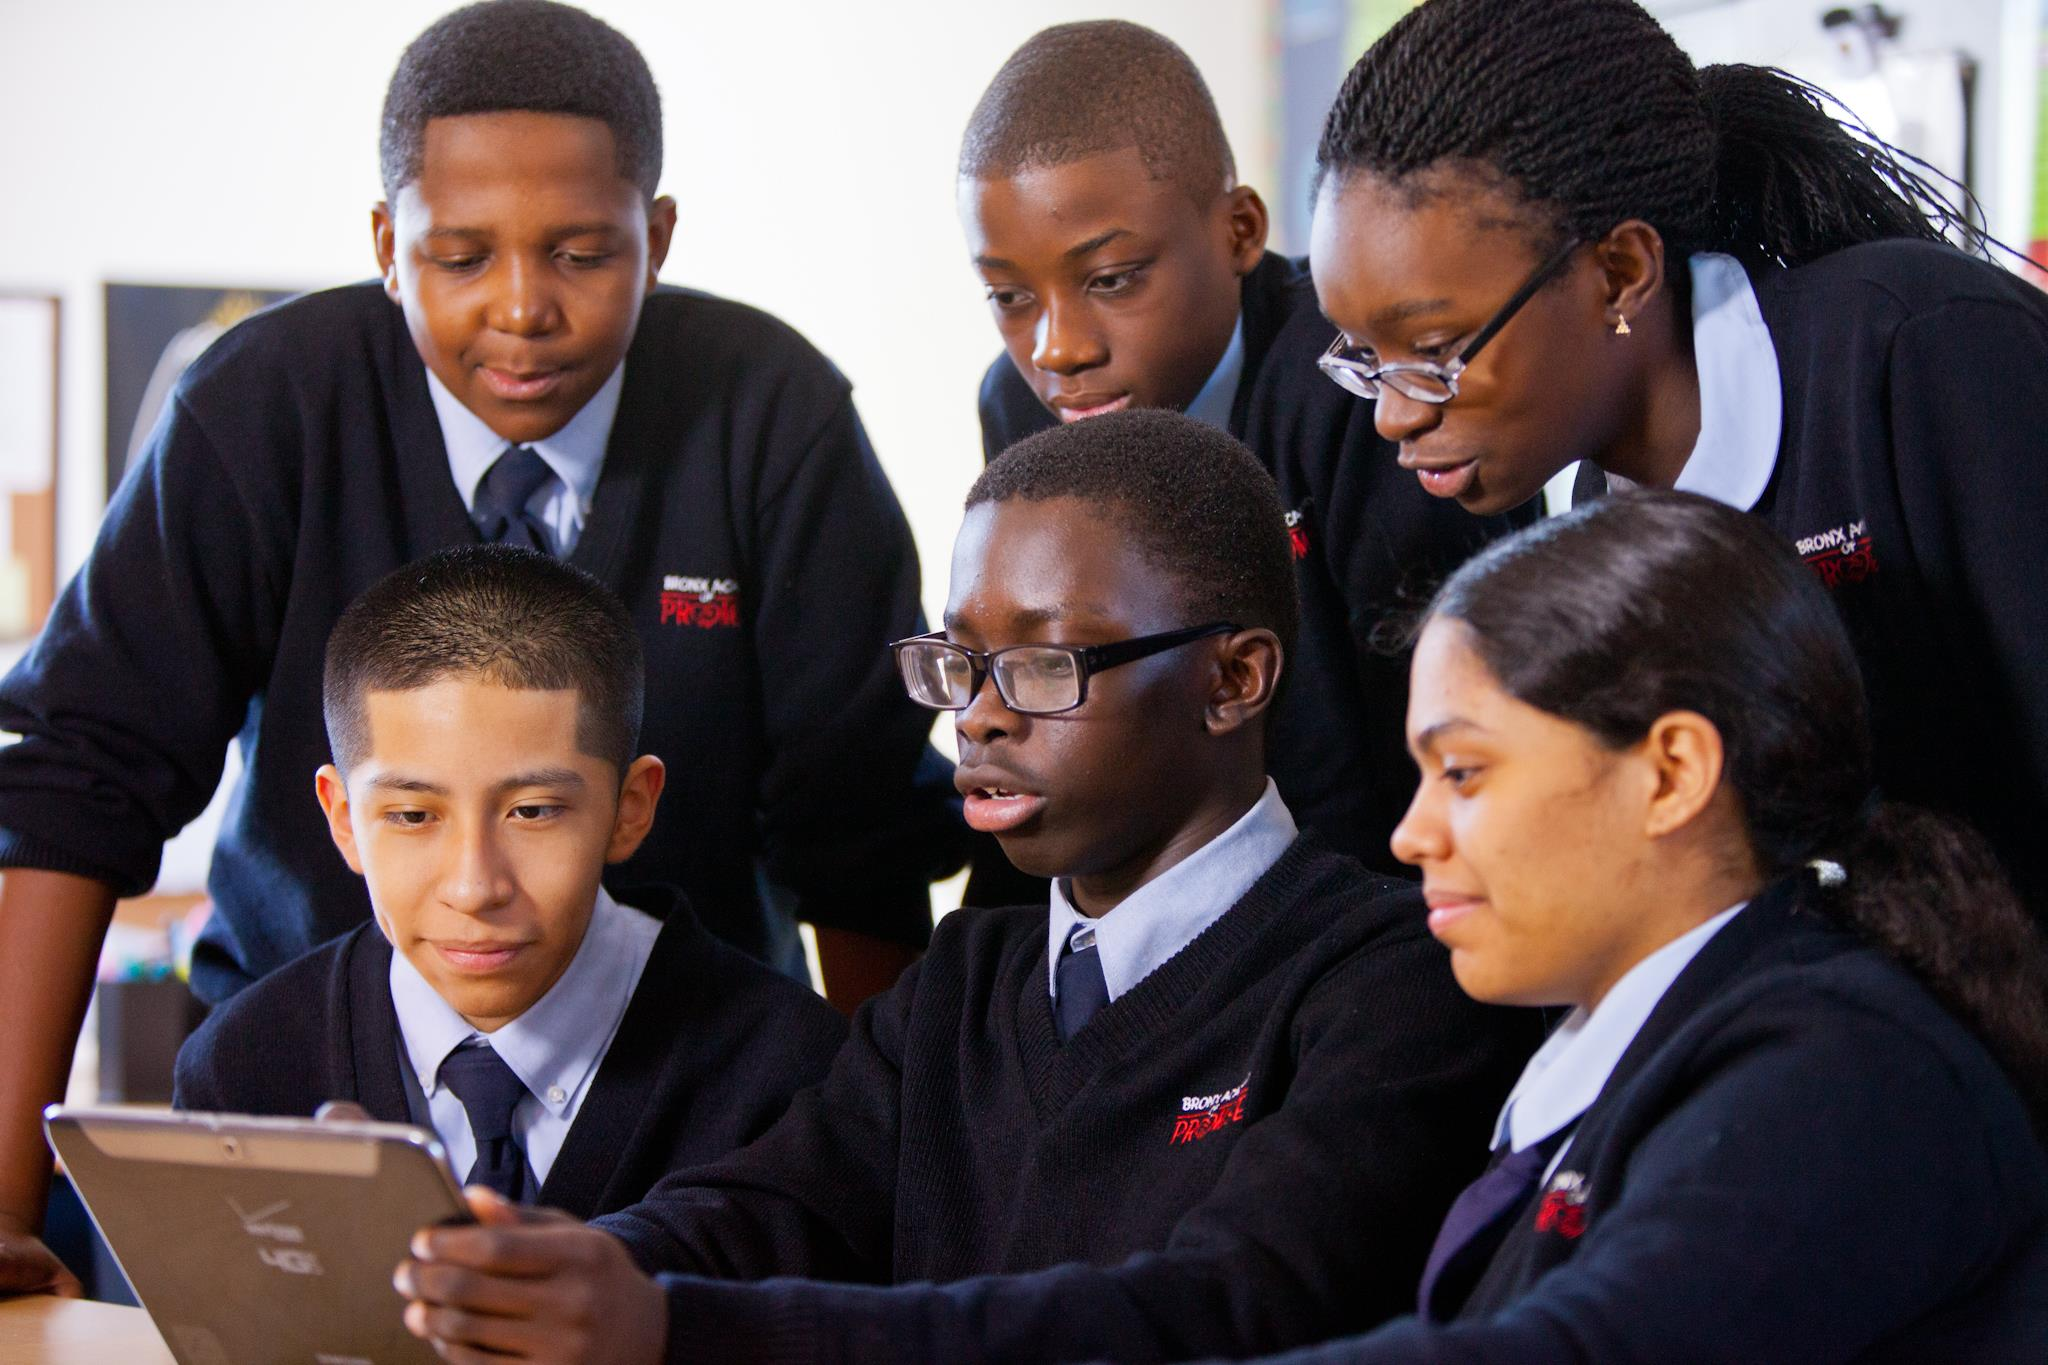 Student Winners from The Bronx Academy of Promise Charter School in New York City